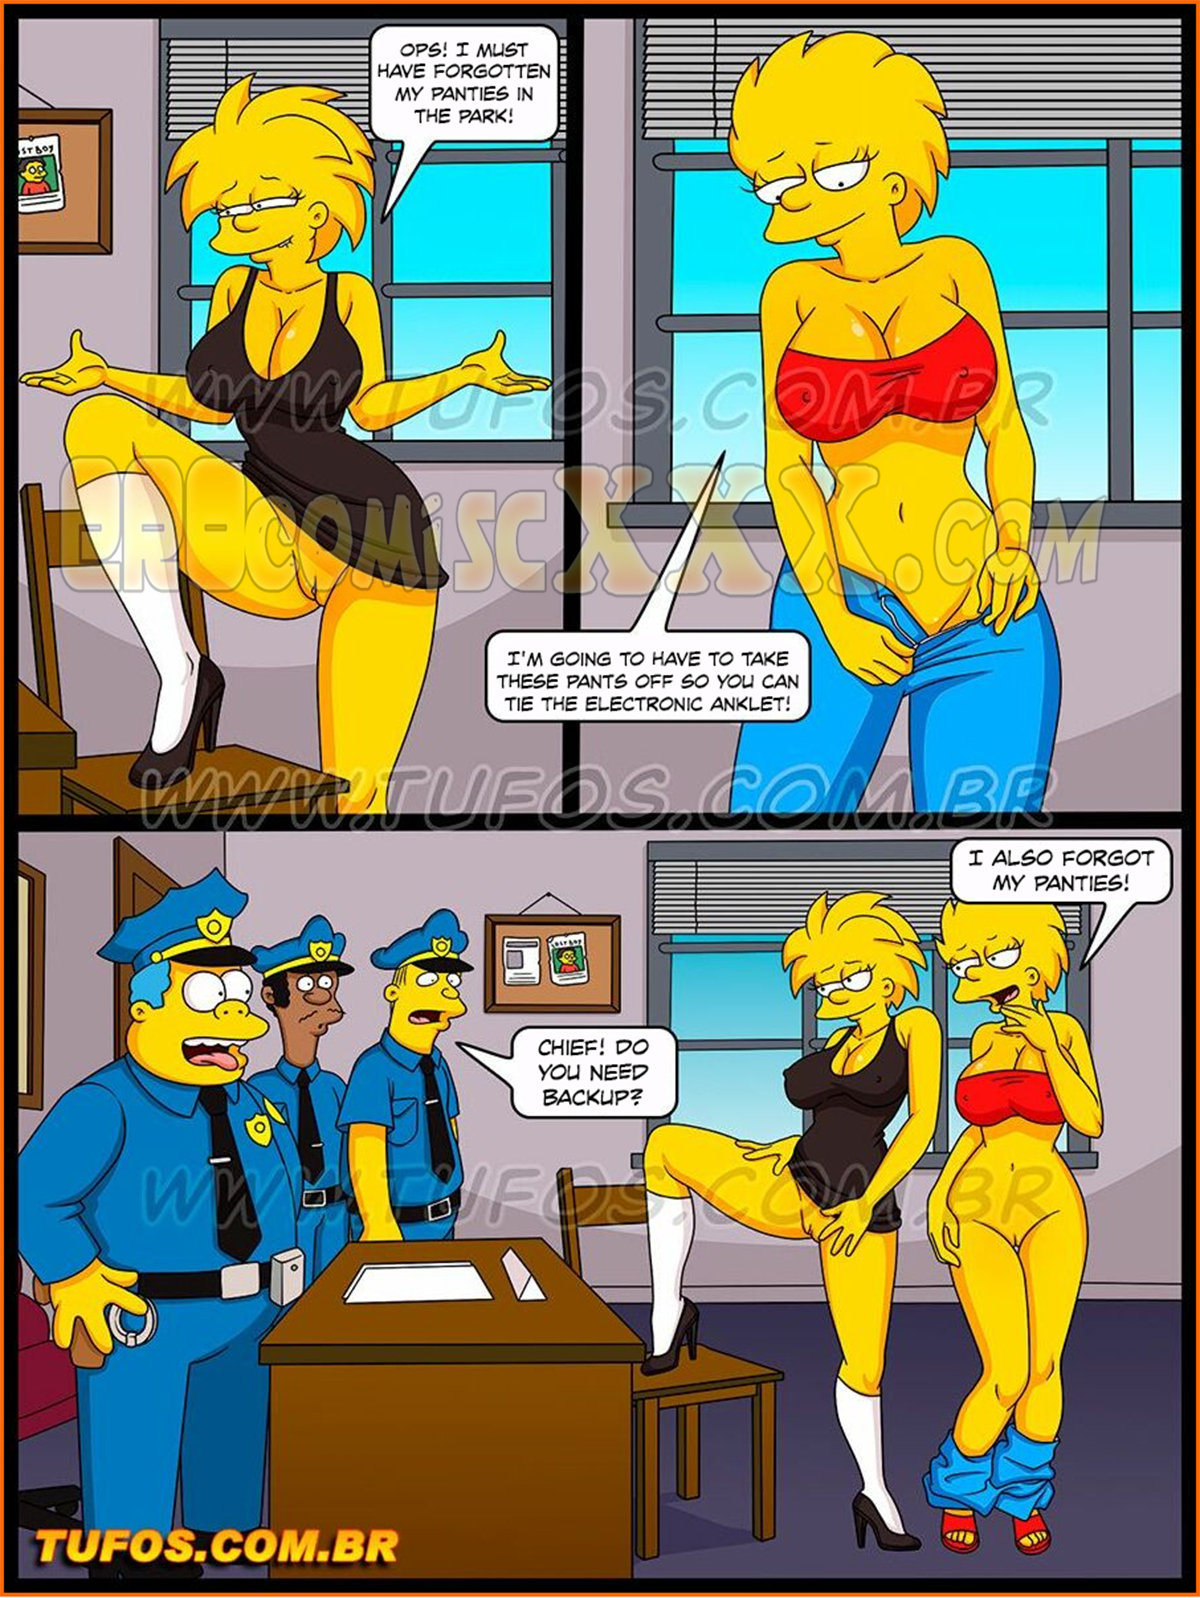 005 24 - The Simpsons 31 - Obscene Attack on Modesty - Tufos.